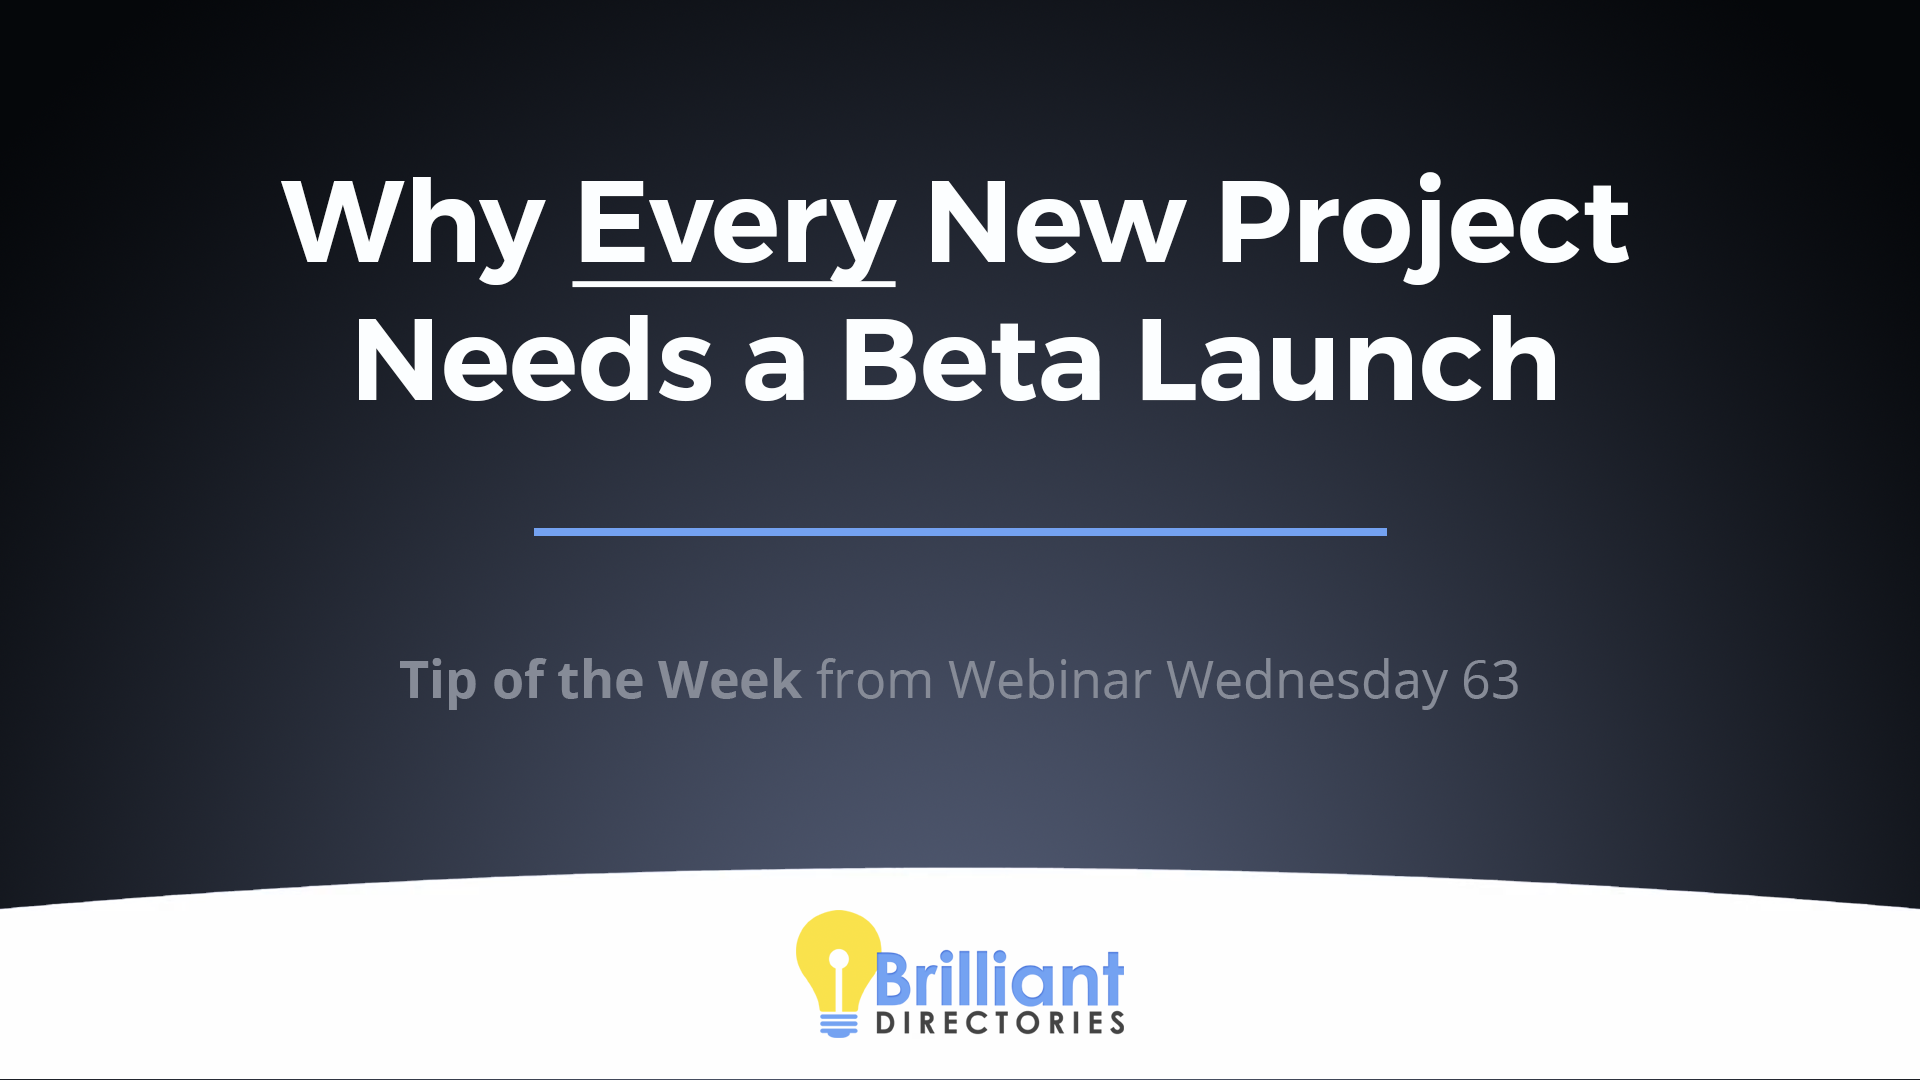 https://www.brilliantdirectories.com/blog/the-value-of-early-the-value-of-early-member-feedback-why-every-membership-program-needs-a-beta-launch